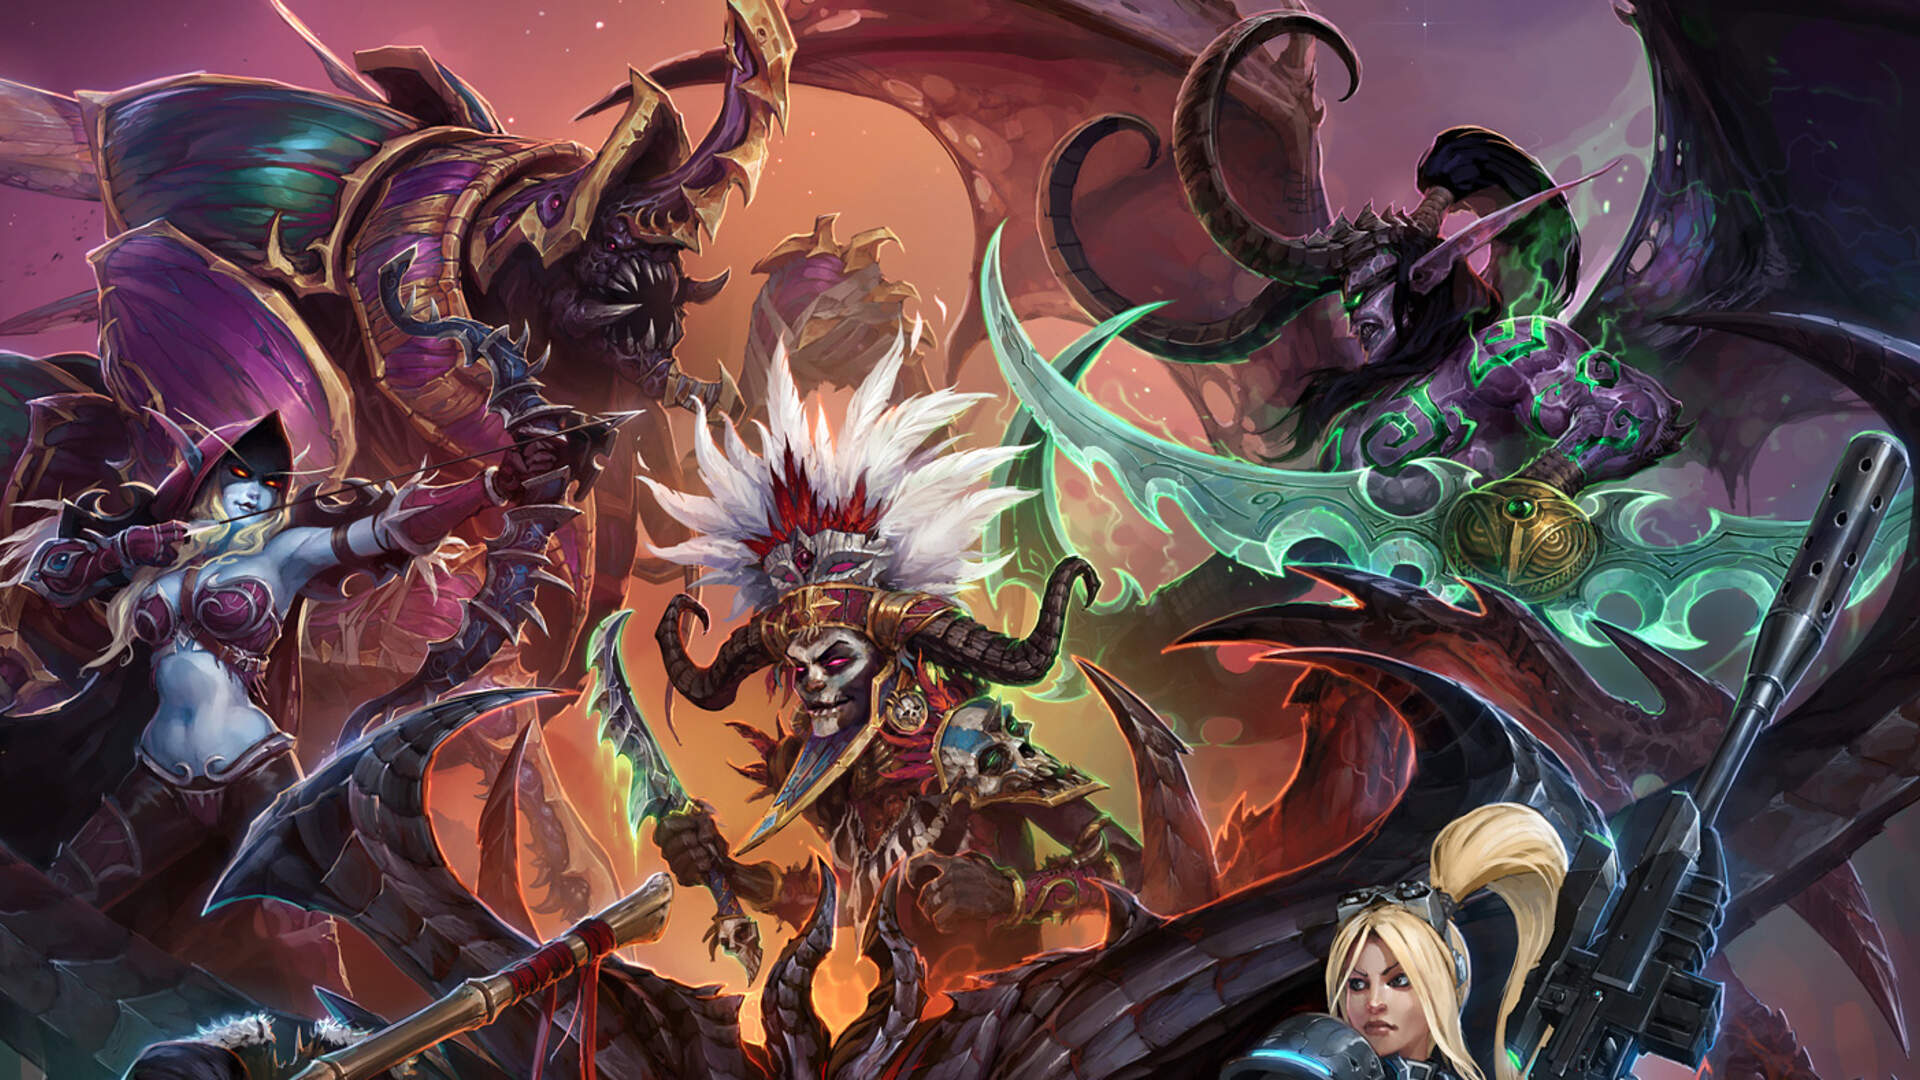 Tuesday Stream: Let's Play Some Heroes of the Storm